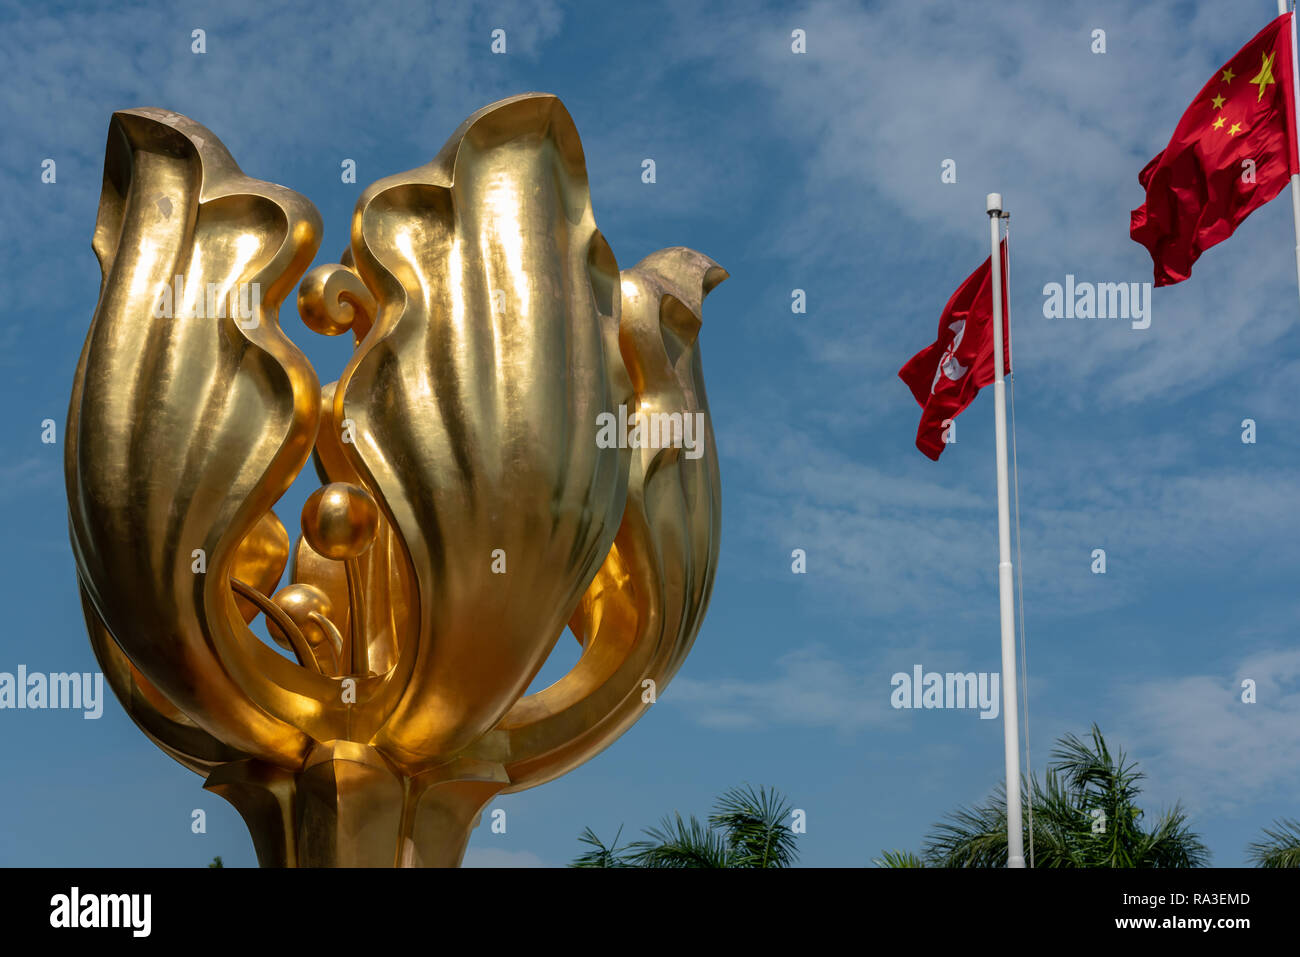 The 'Forever Blooming Golden Bauhinia Sculpture' which lends its name to Golden Bauhinia Square at Hong Kong's Convention and Exhibition Centre - Stock Image